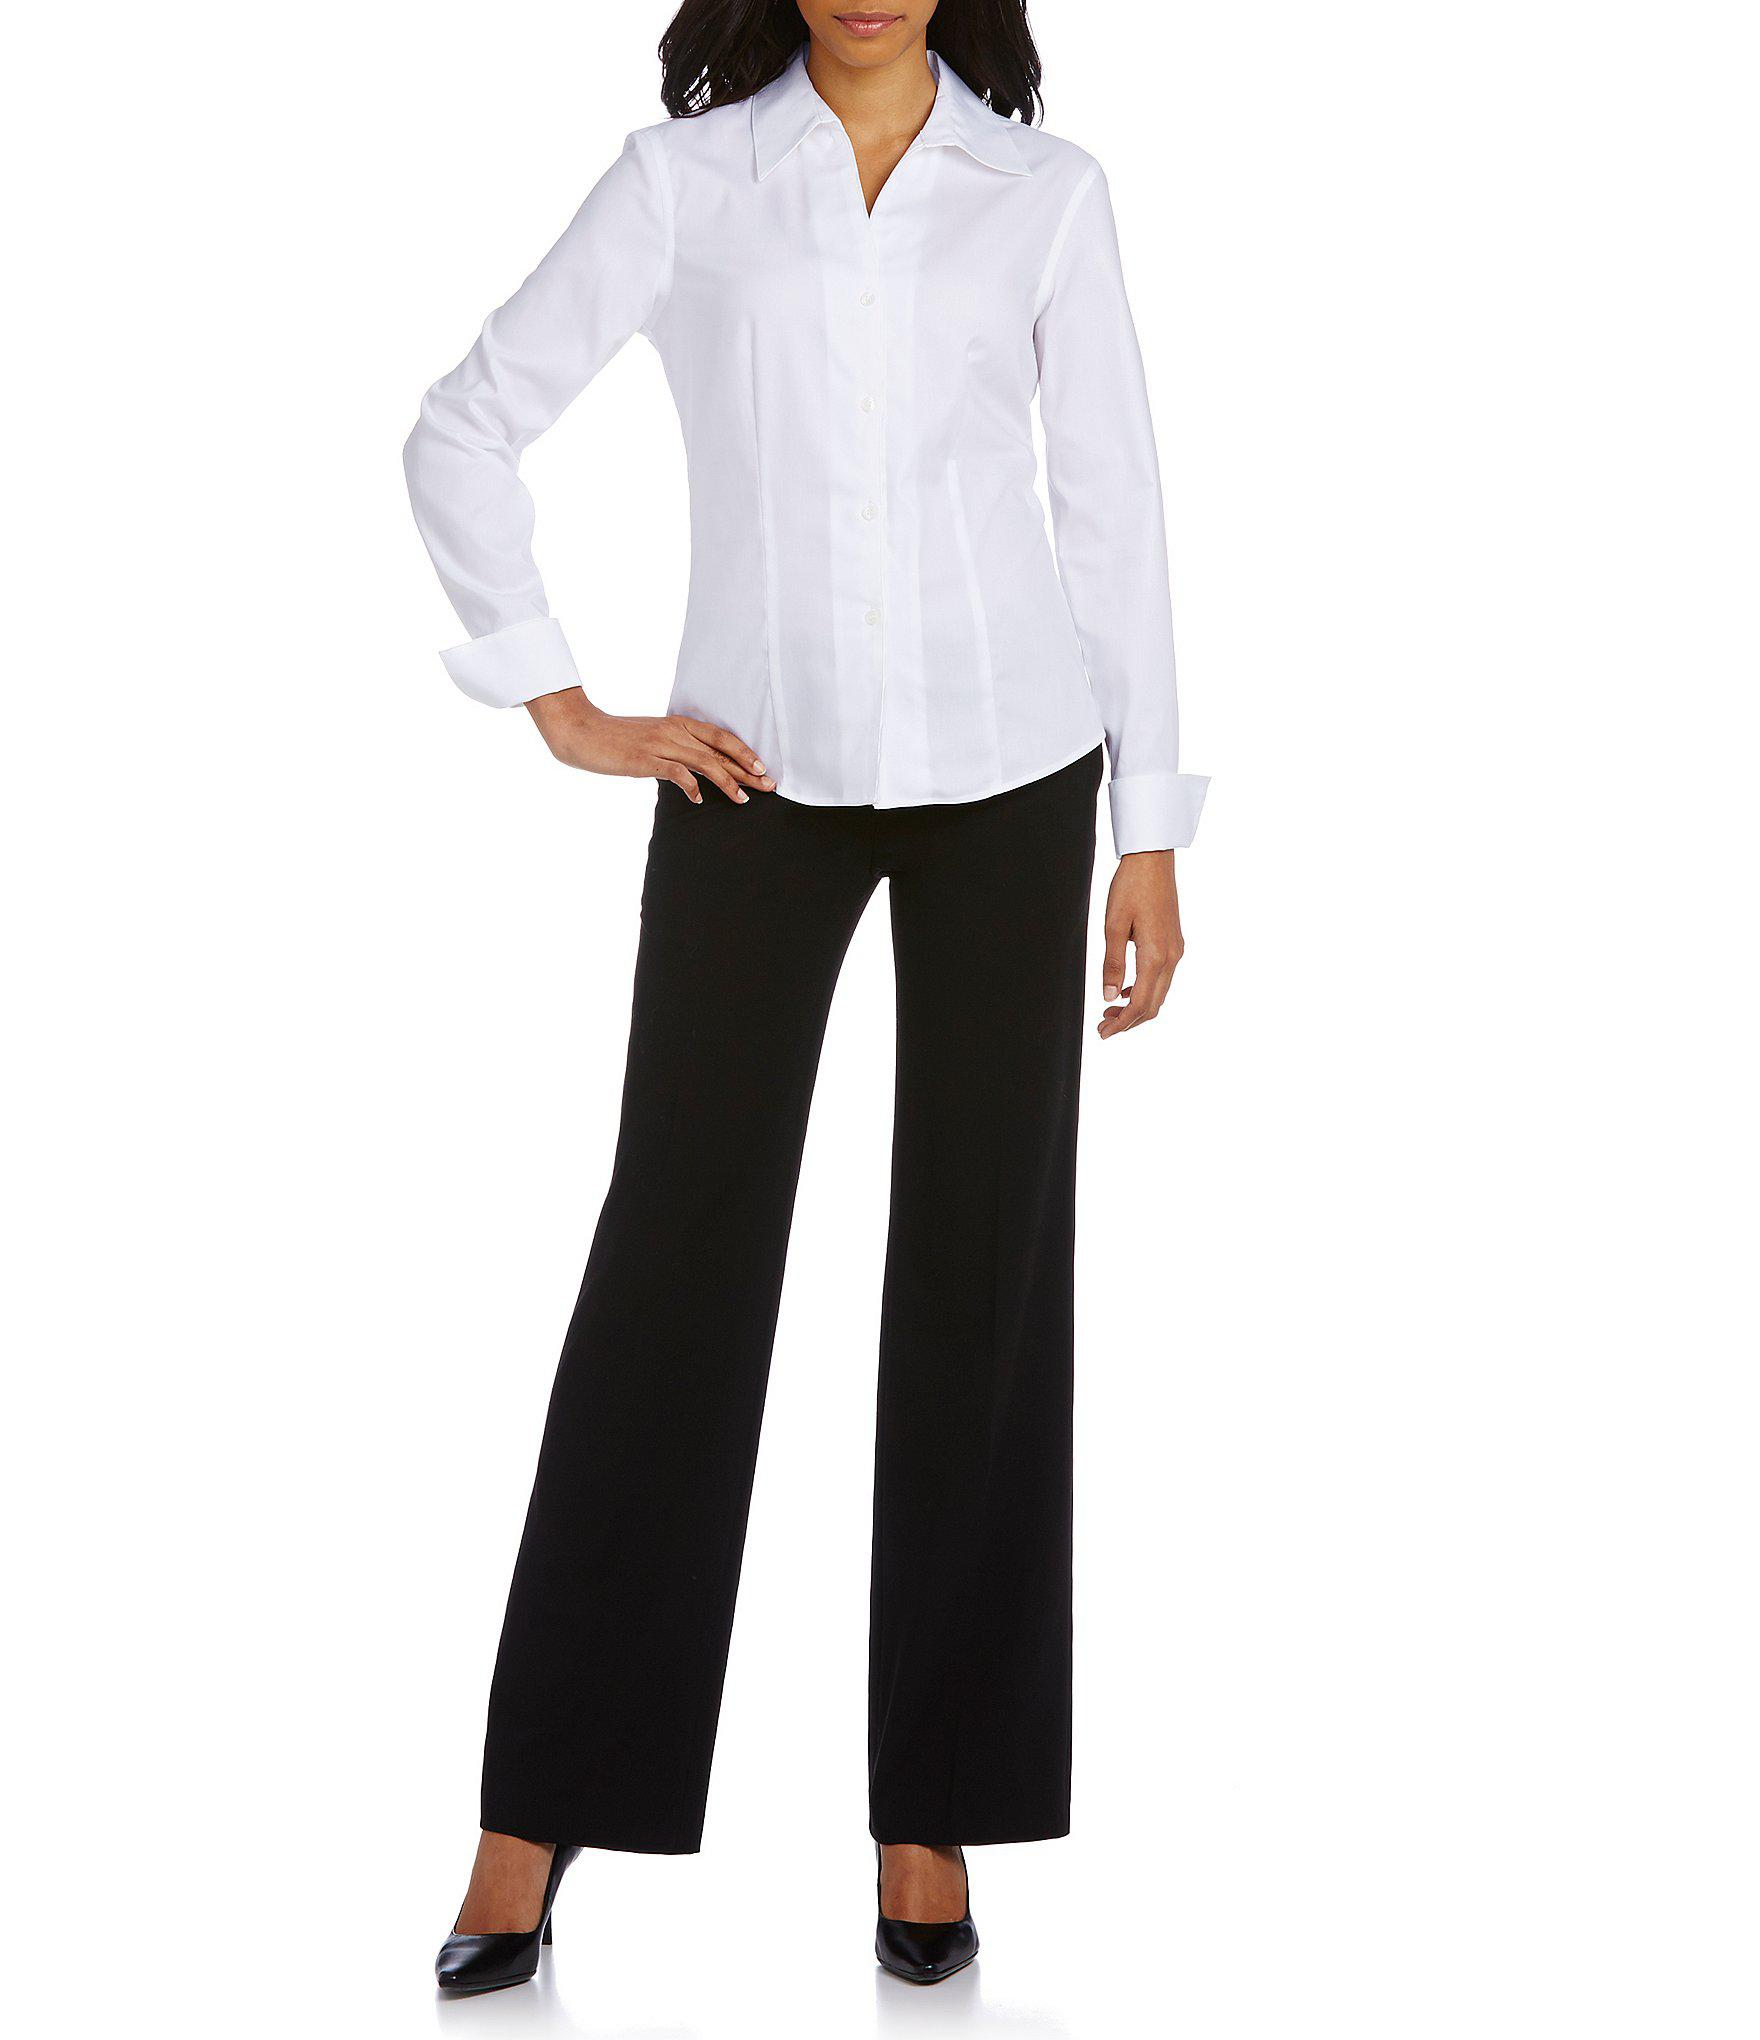 Lyst Calvin Klein Petite Wrinkle Free Pinpoint Oxford Blouse In White